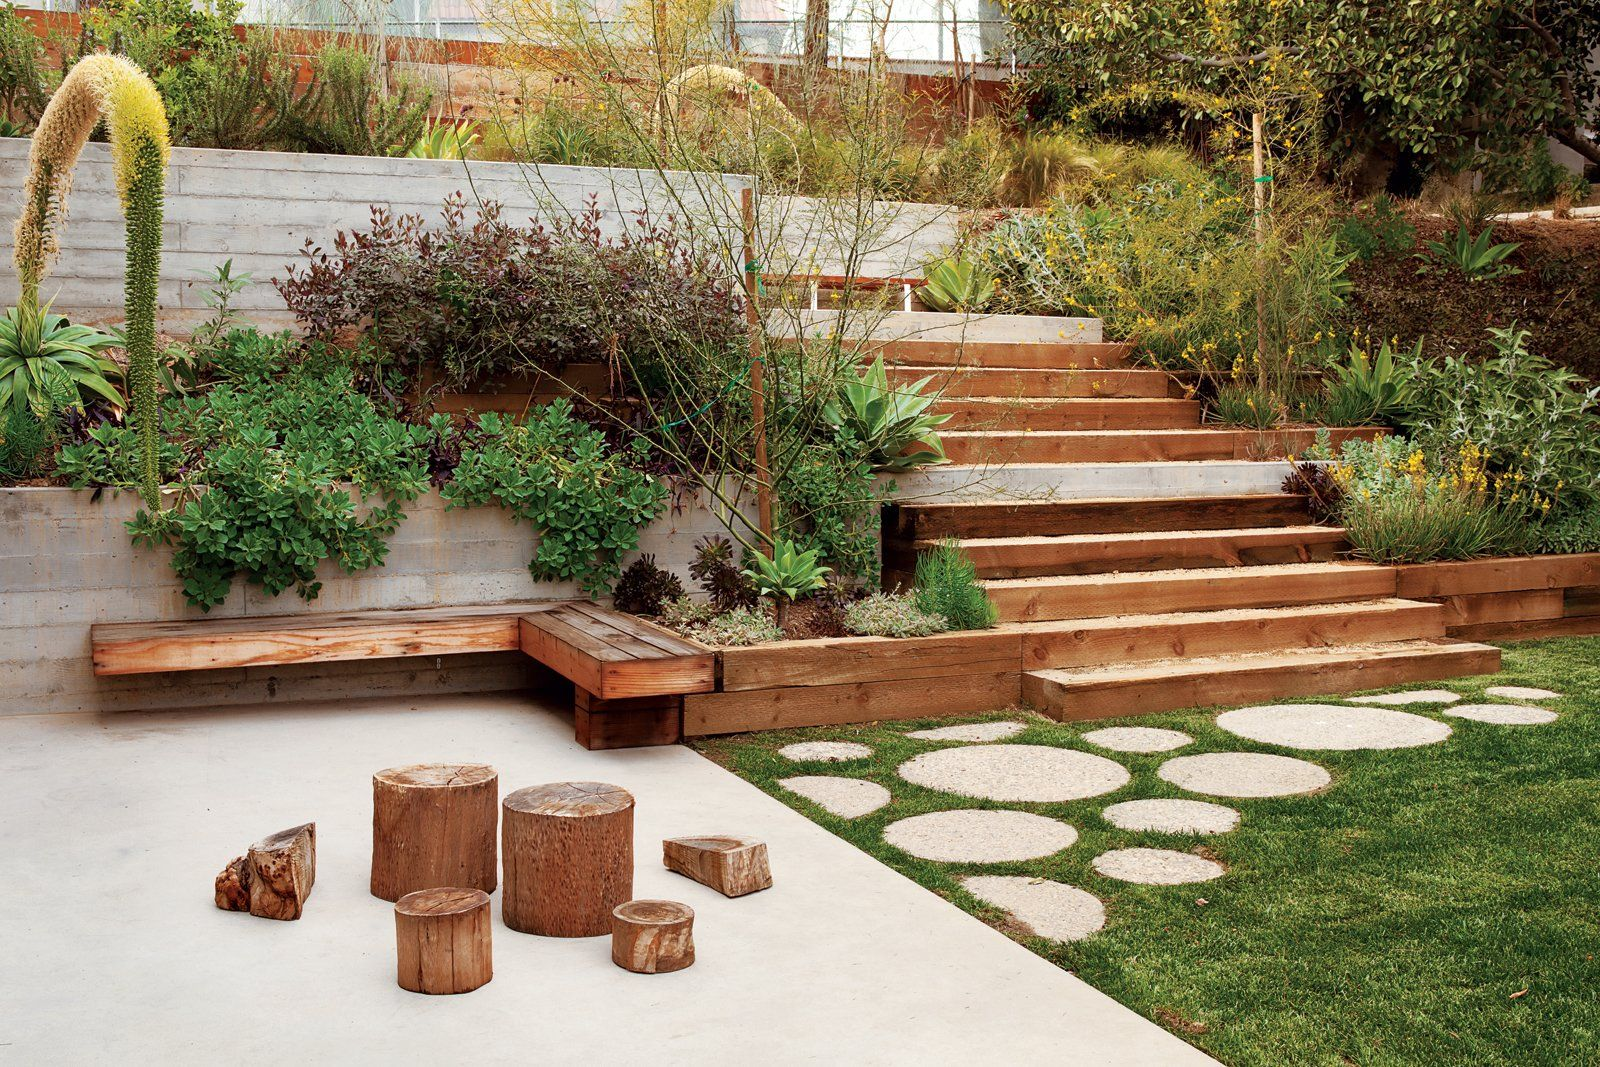 garden guide: the difference between hardscape and softscape